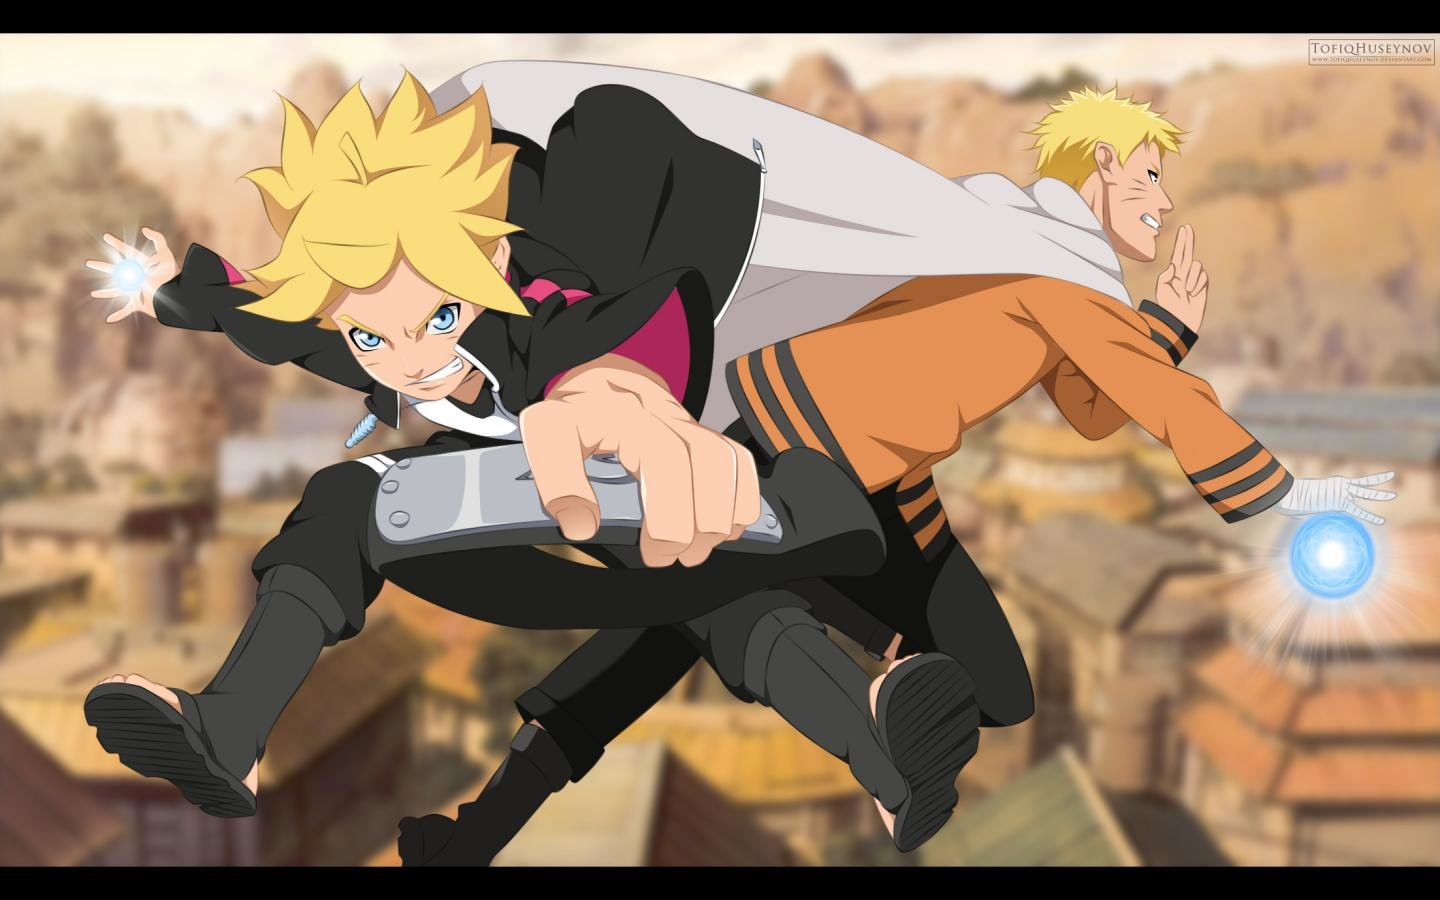 Awesome Boruto: Naruto The Movie free background ID:327456 for hd 1440x900 computer